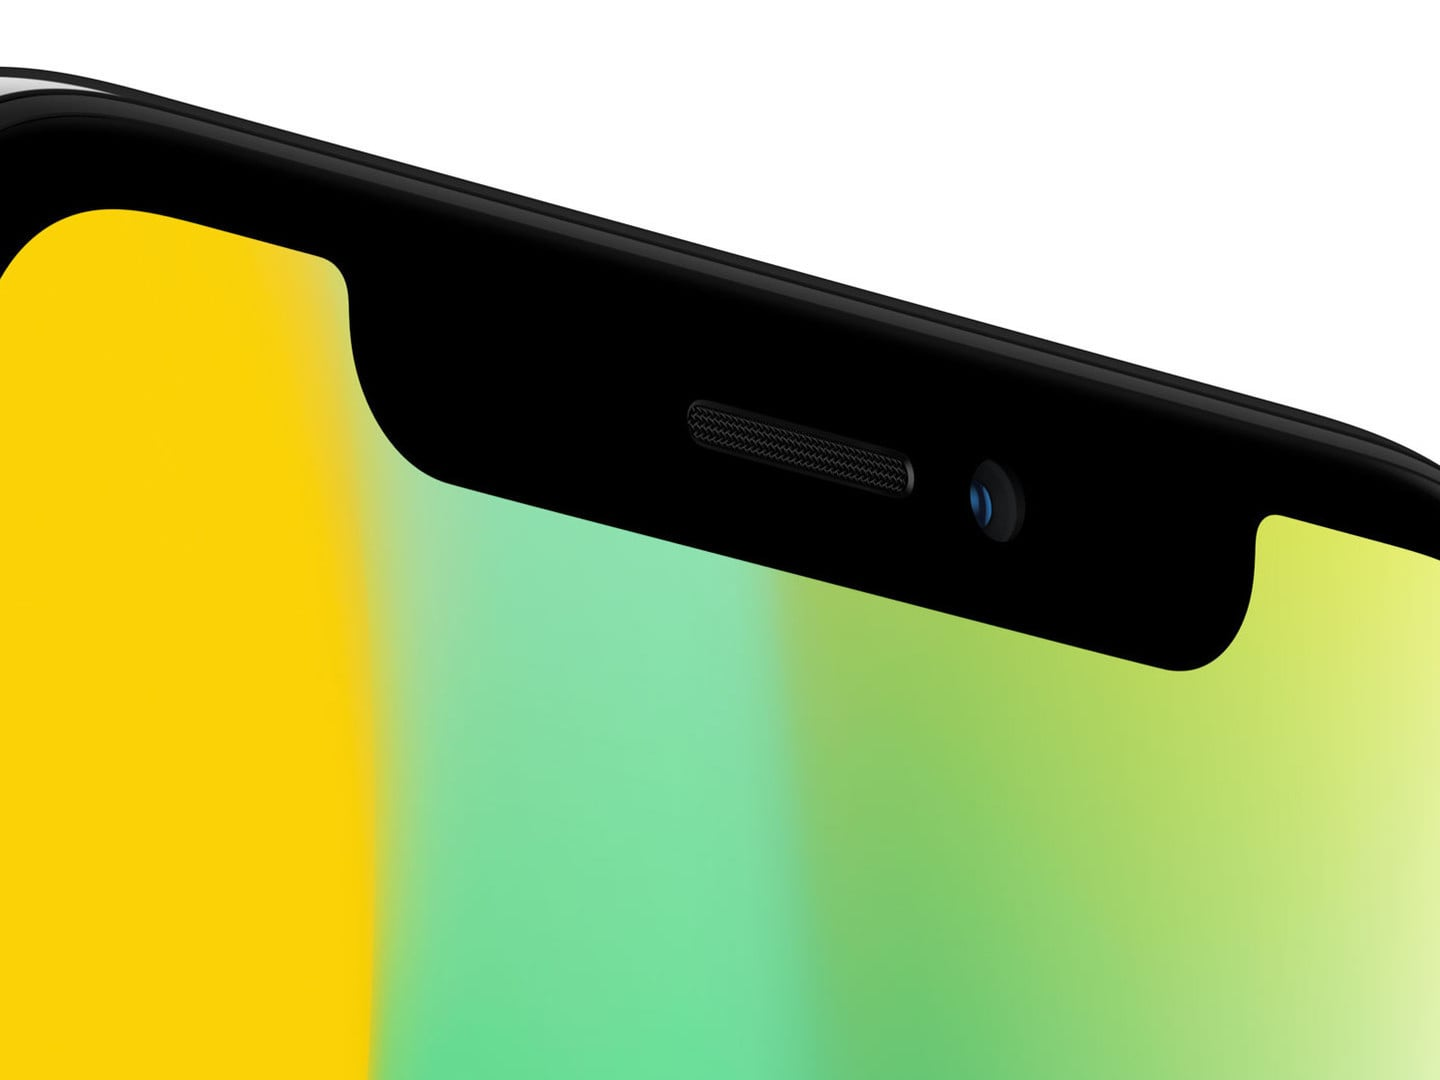 Apple iPhone Notch